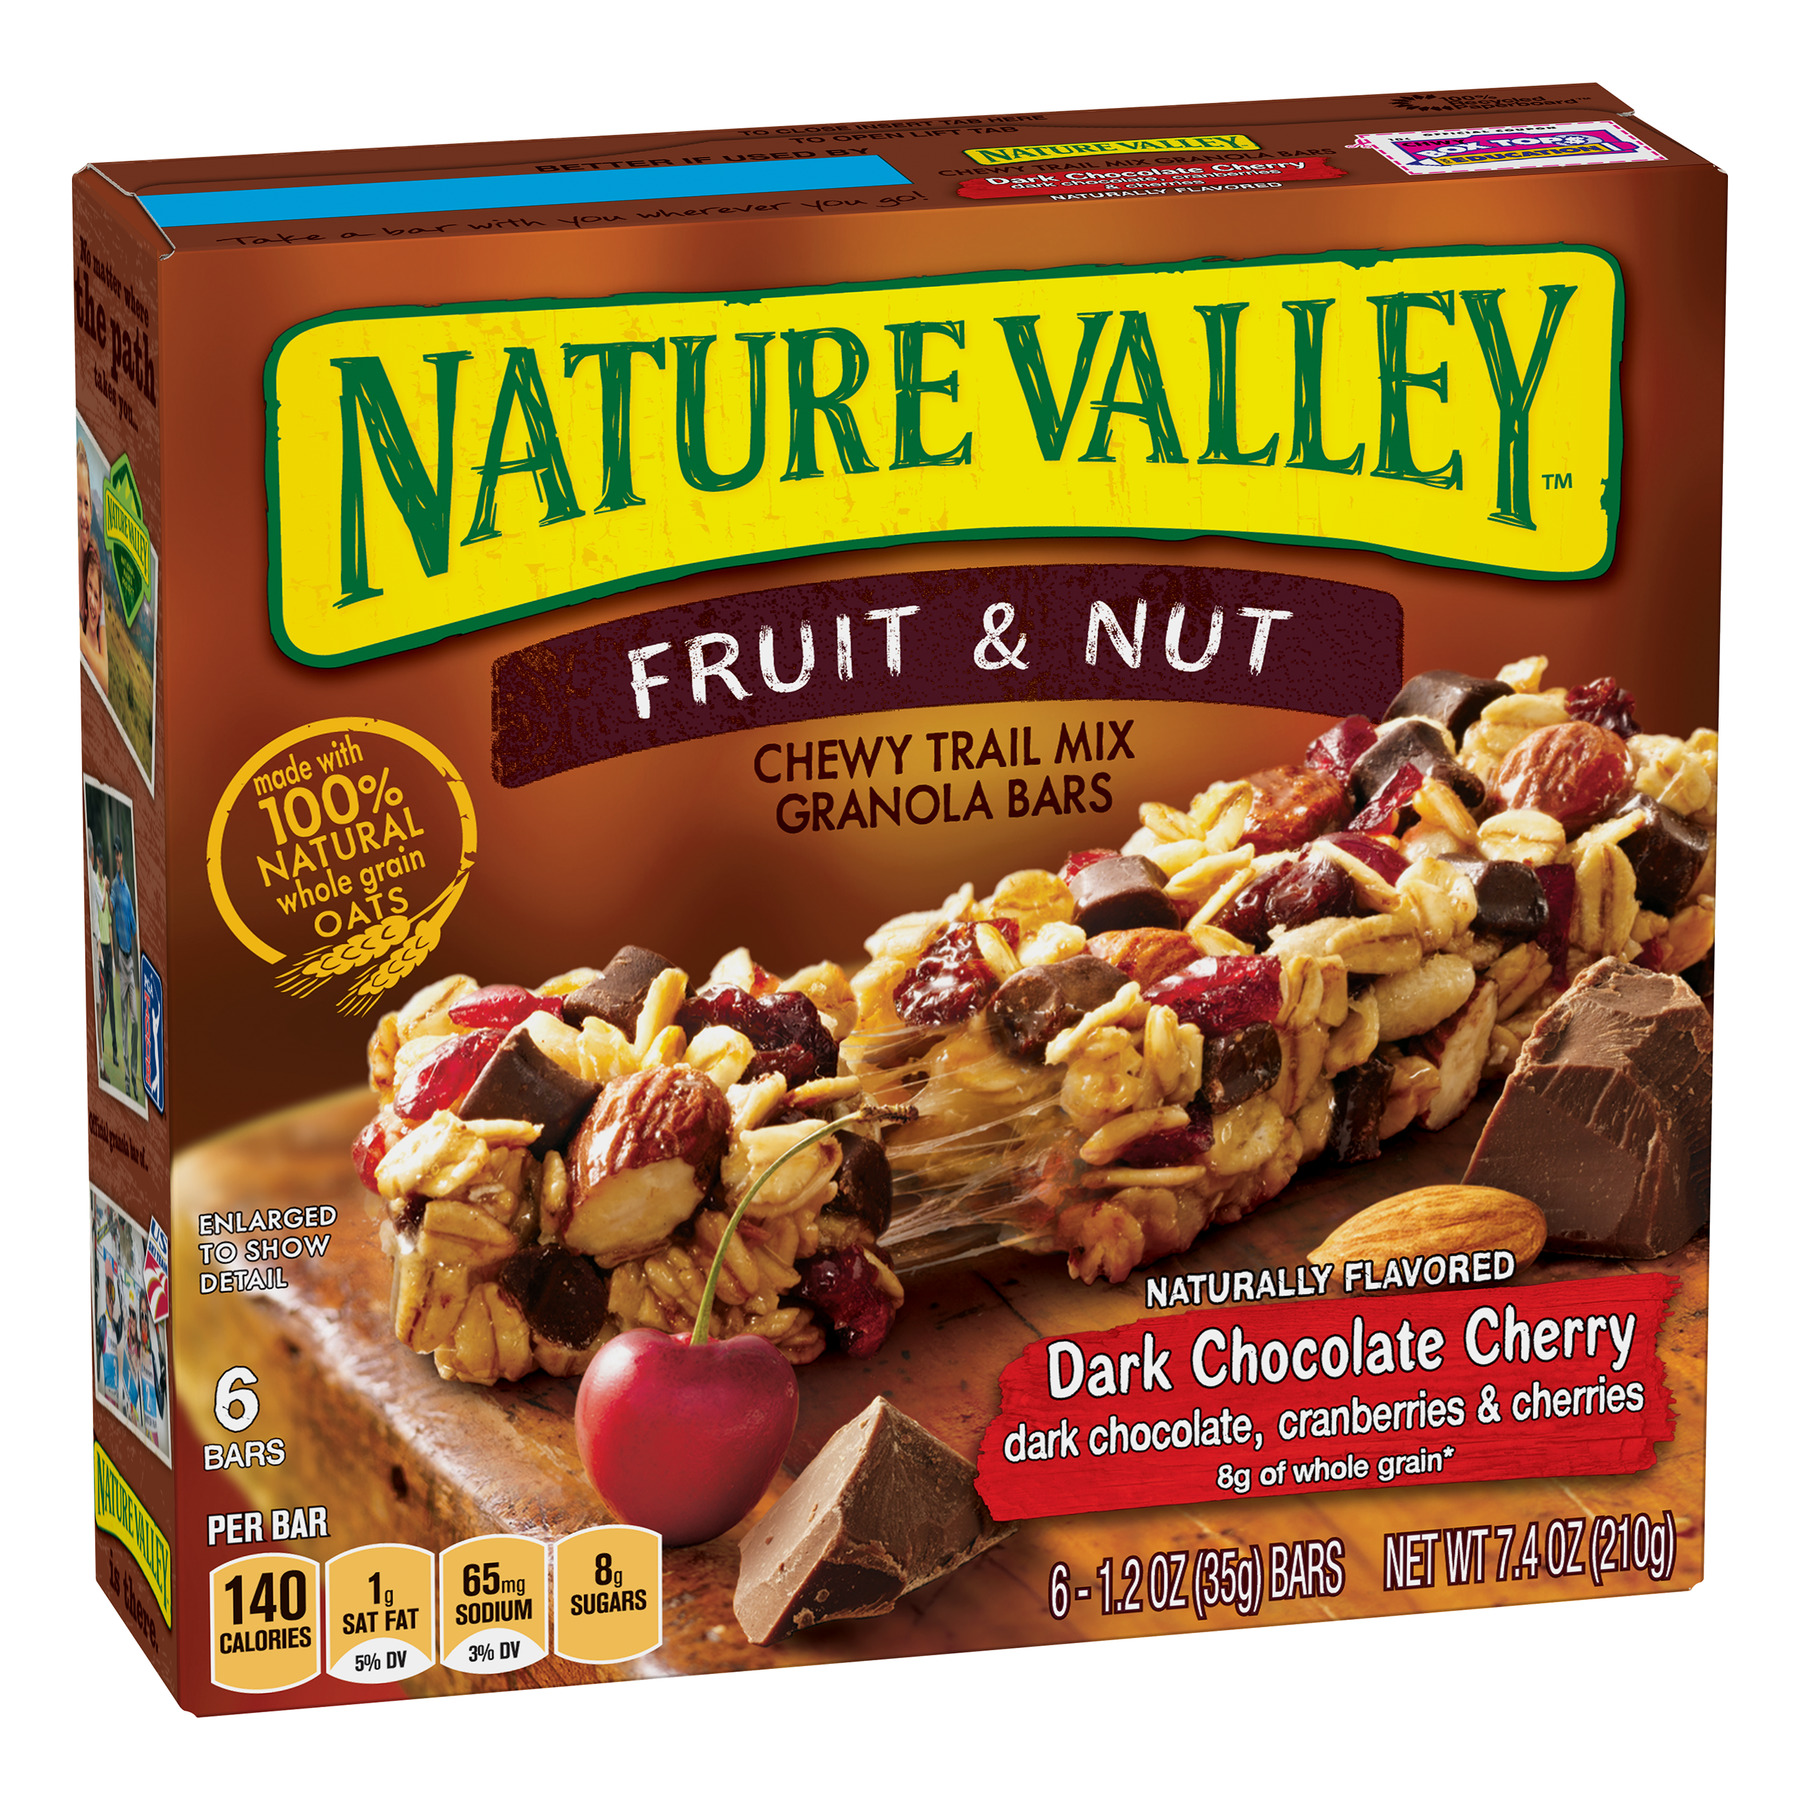 Nature Valley Trail Mix Dark Chocolate & Nut Chewy Granola Bars 7.4 oz